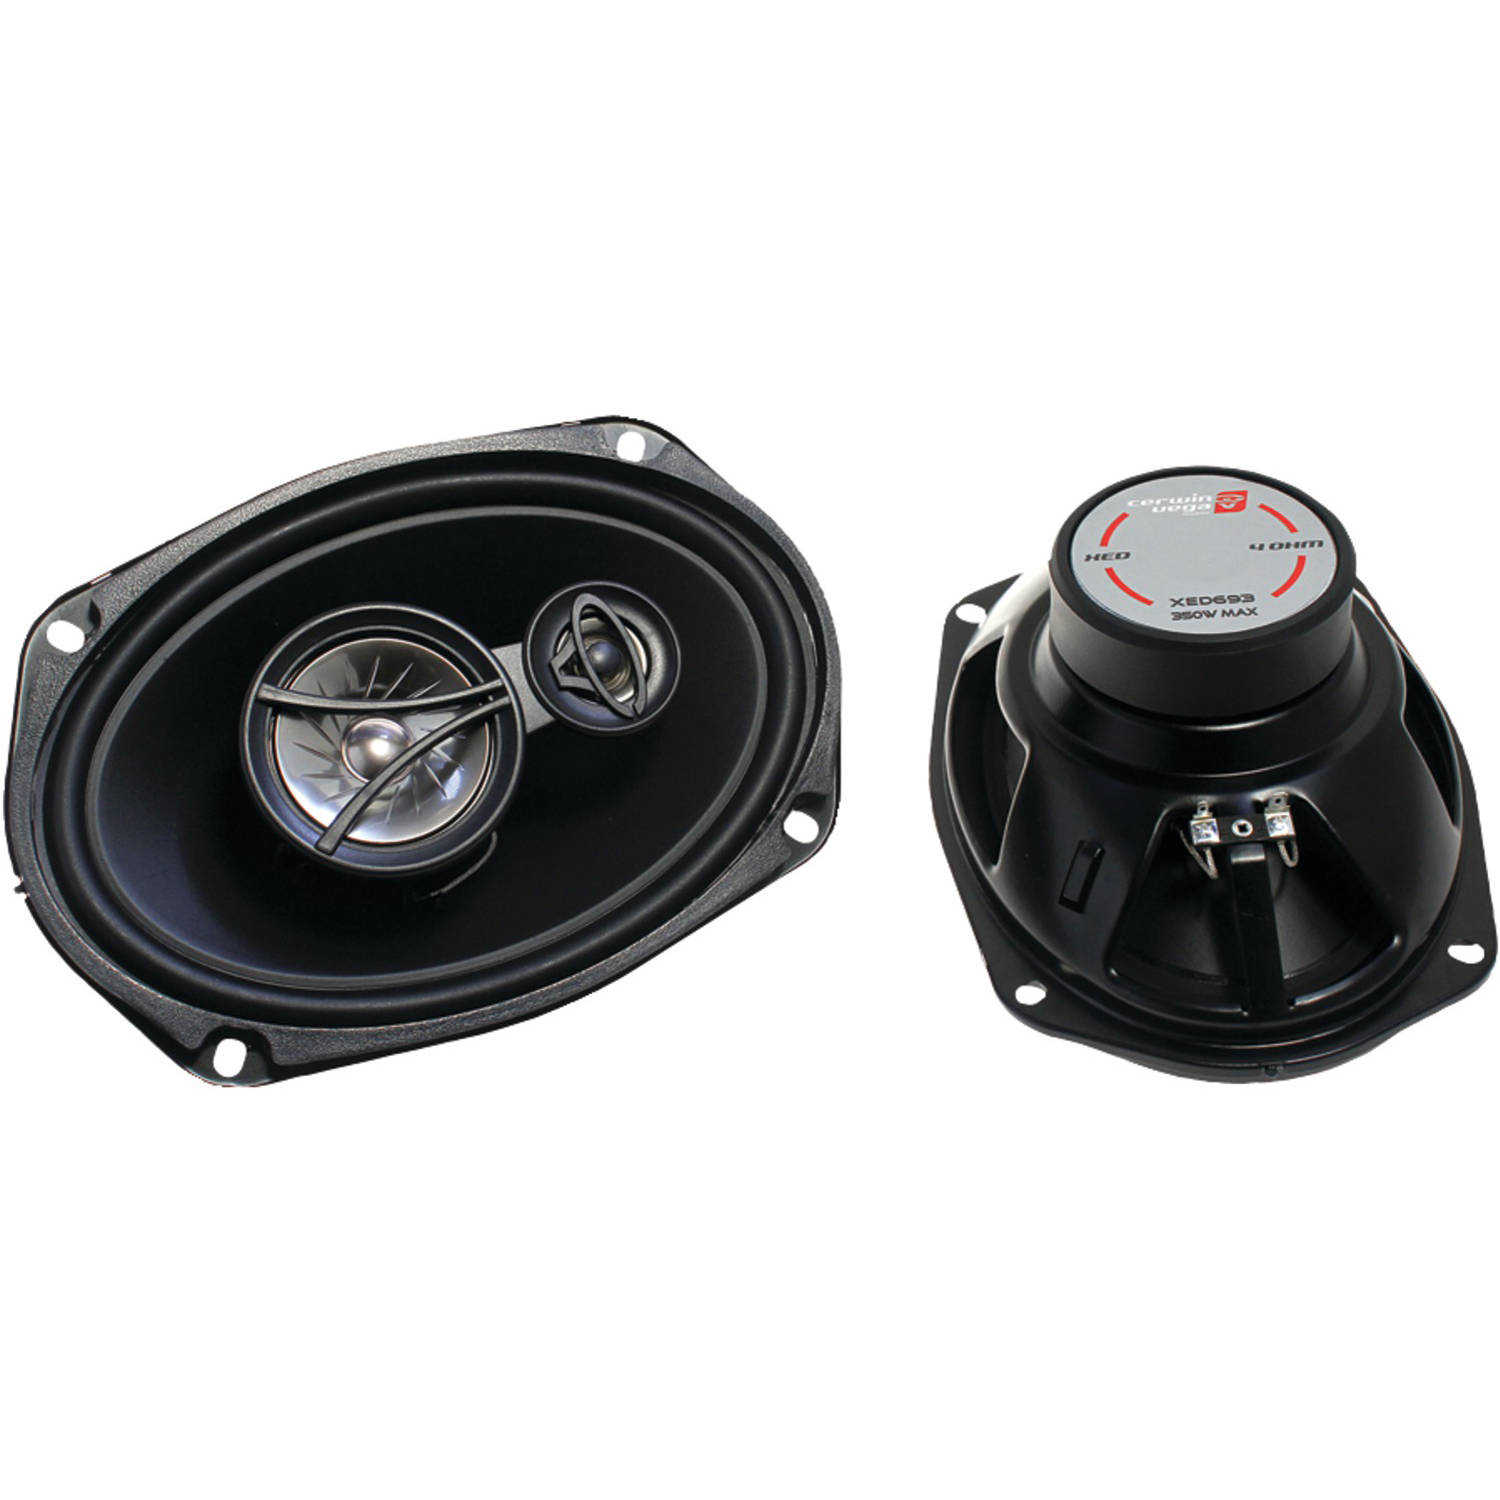 "Cerwin-Vega Mobile XED693 XED Coaxial Speakers (3 Way, 6"" x 9"")"